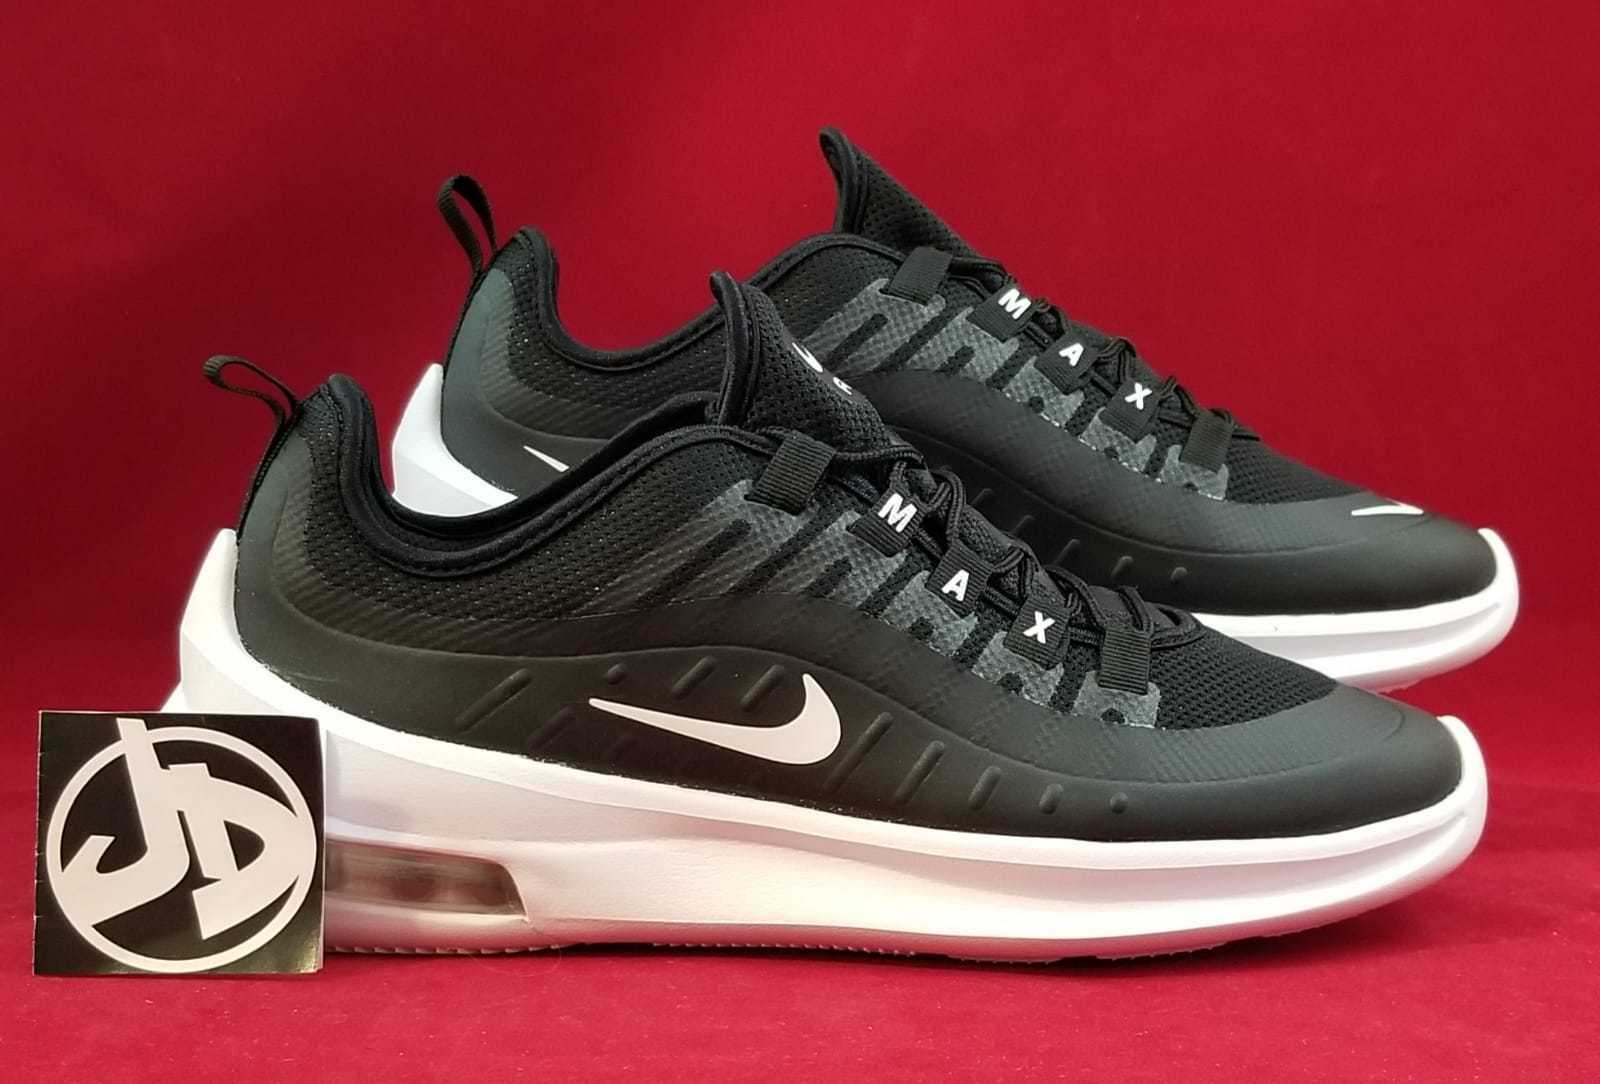 Nike Air Max Axis Shoes for Women Style Aa2168   Authentic US Size 8 ... 0bc996d40